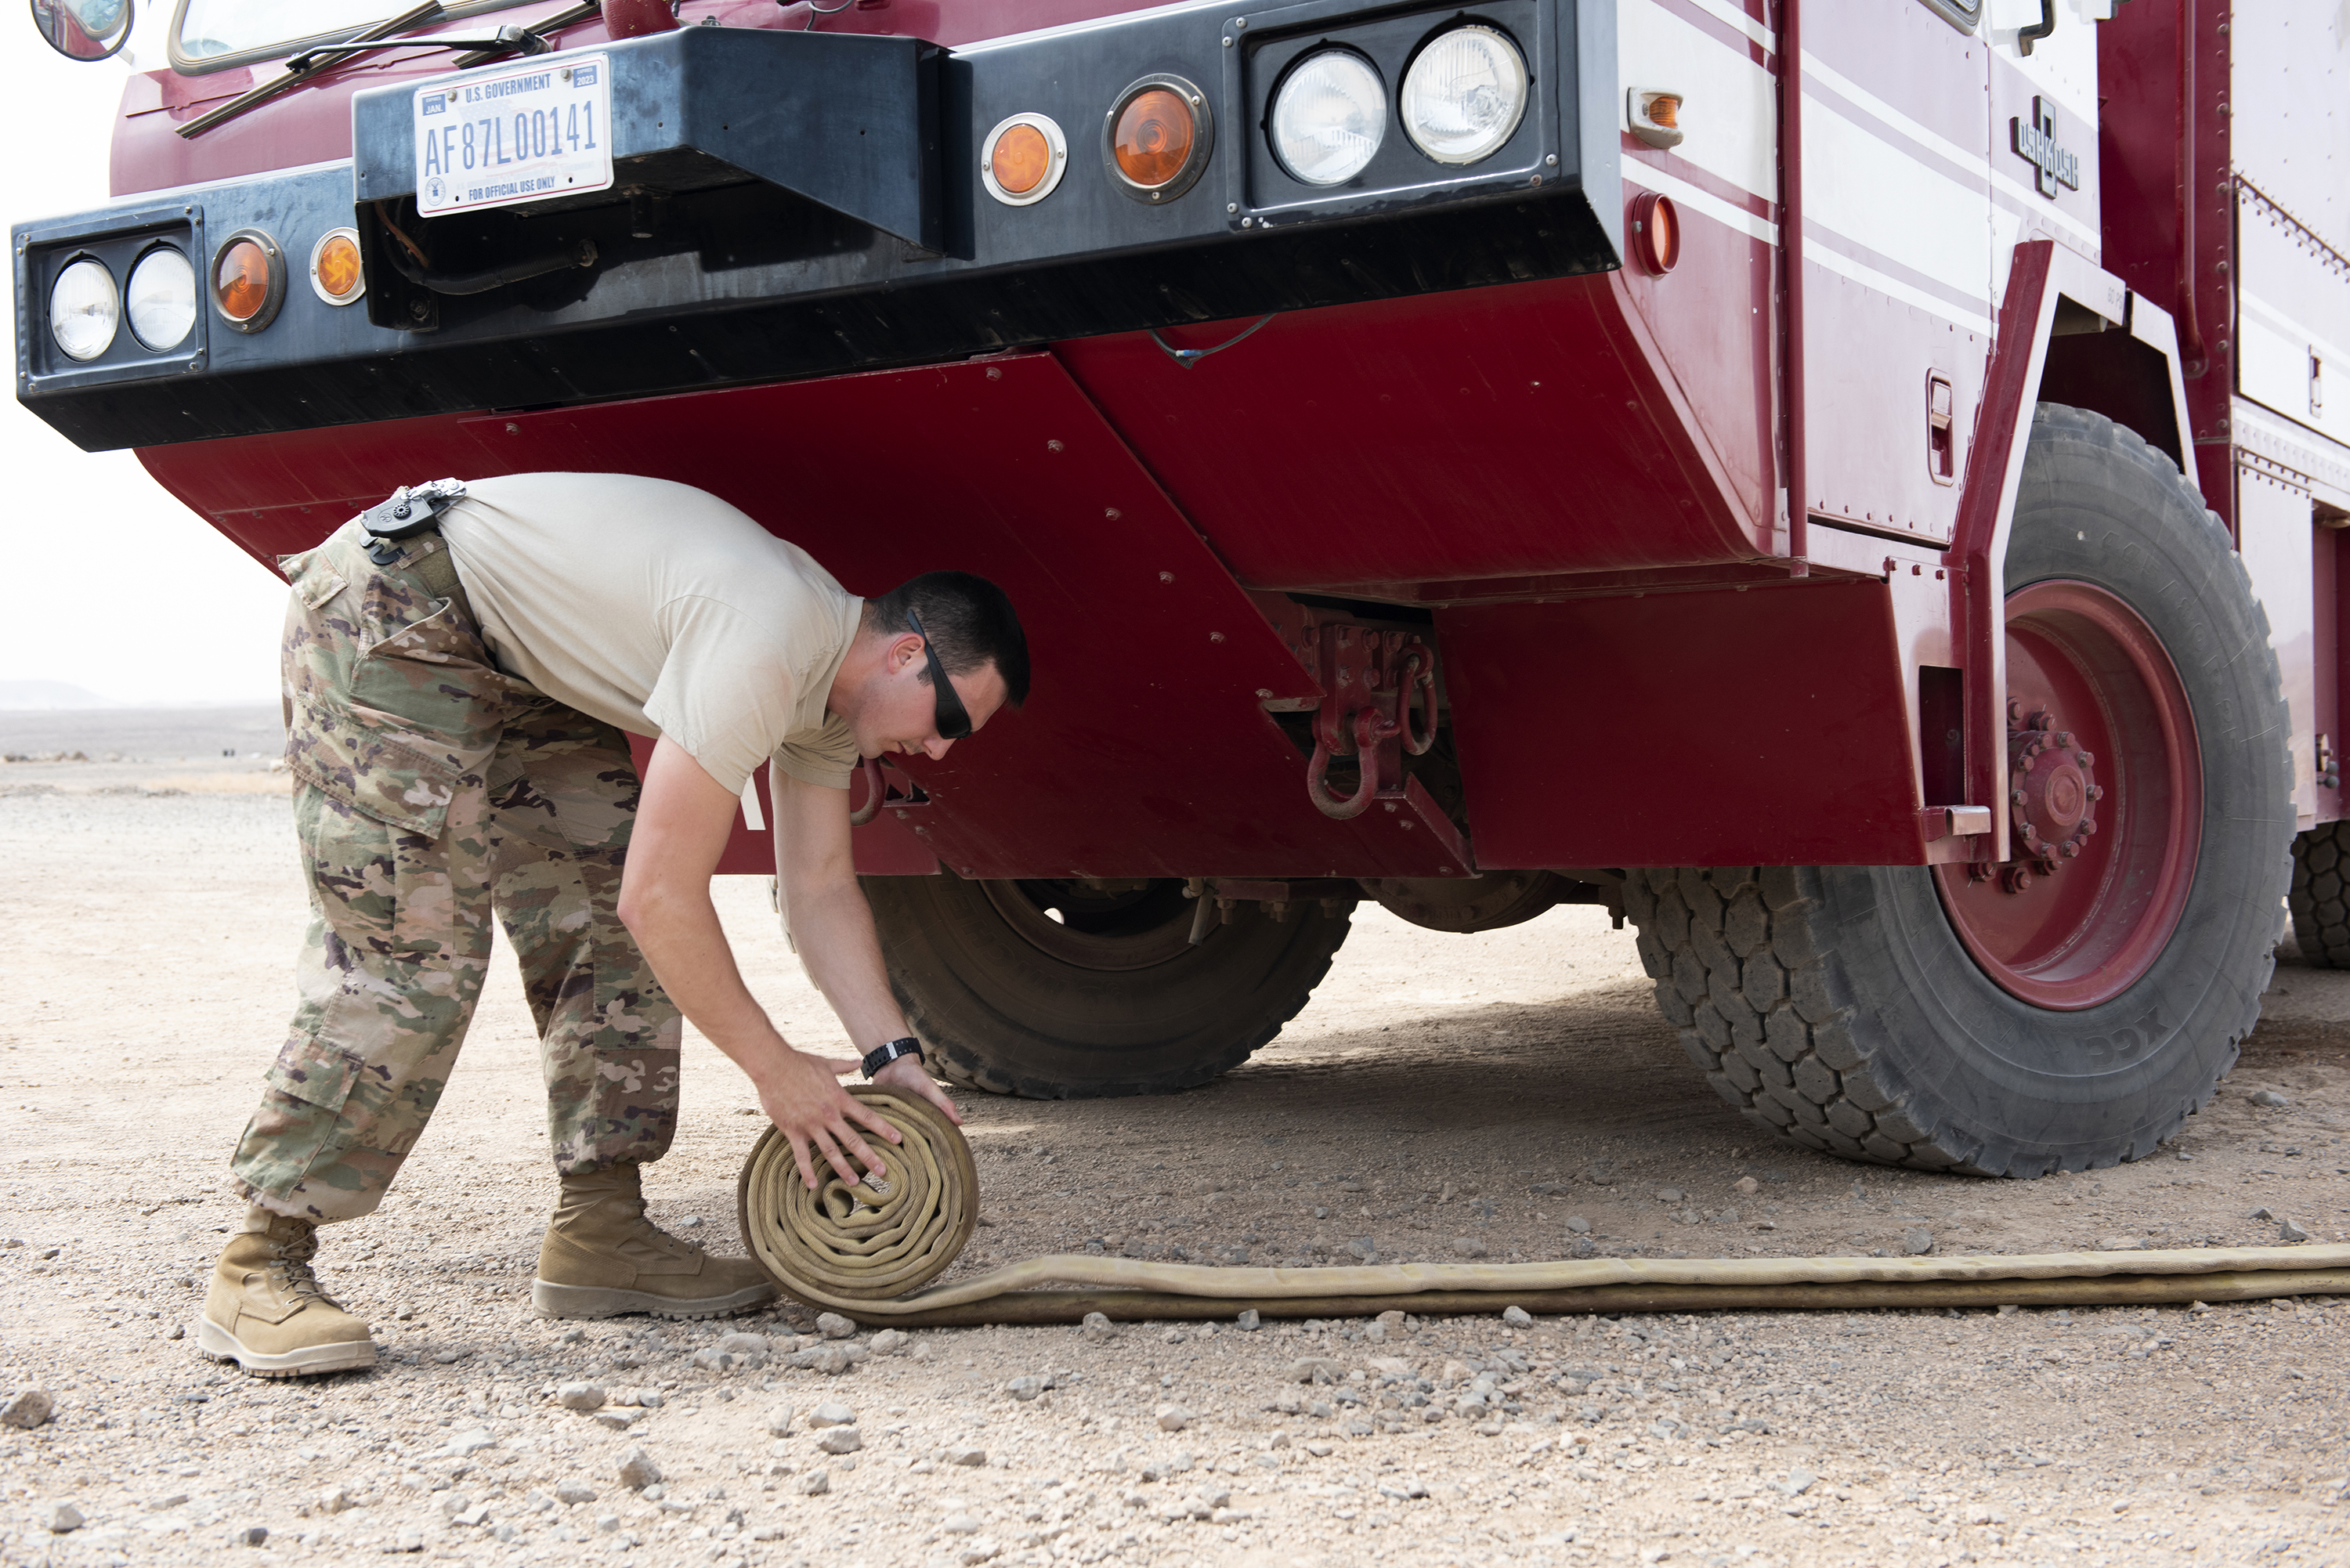 An Airman assigned to Combined Joint Task Force - Horn of Africa, rolls up a fire hose after filling the tank on a P-19B fire truck, outside Djibouti City, Djibouti, Aug. 20, 2018. The Airmen preform daily inspections on their trucks and equipment in order to maintain readiness. (U.S. Air National Guard photo by Master Sgt. Sarah Mattison)